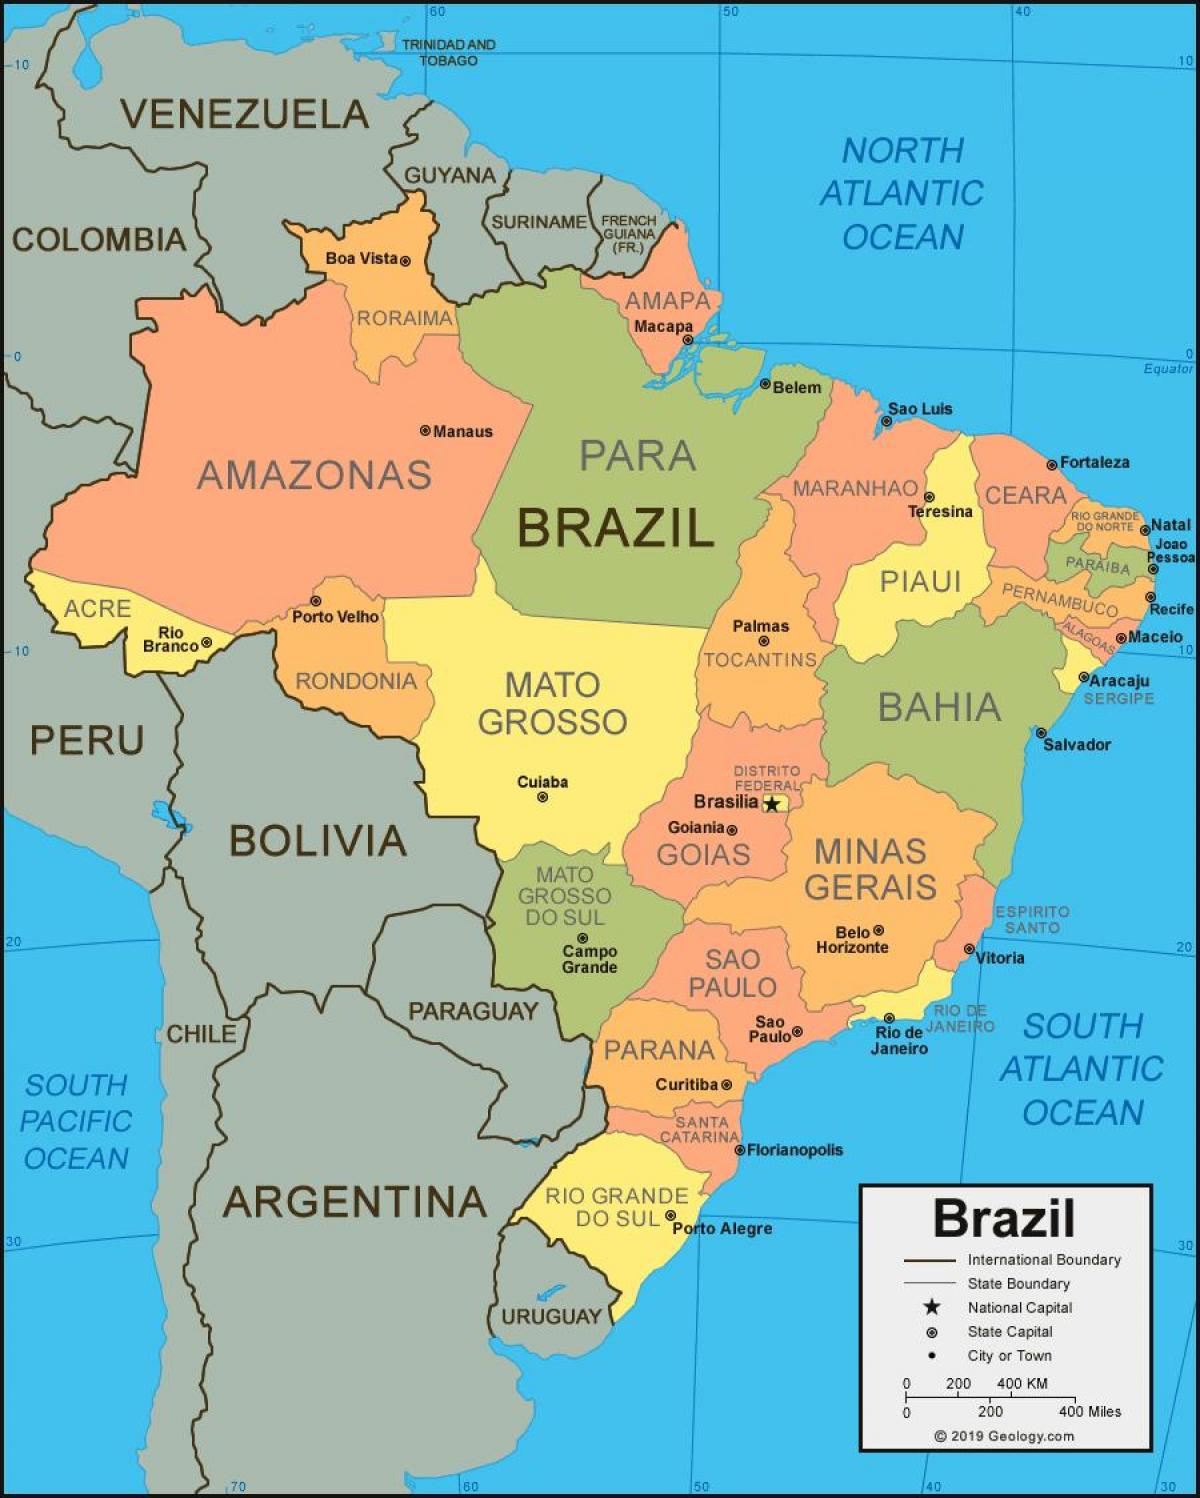 Brazil states map - Brazil map with states (South America